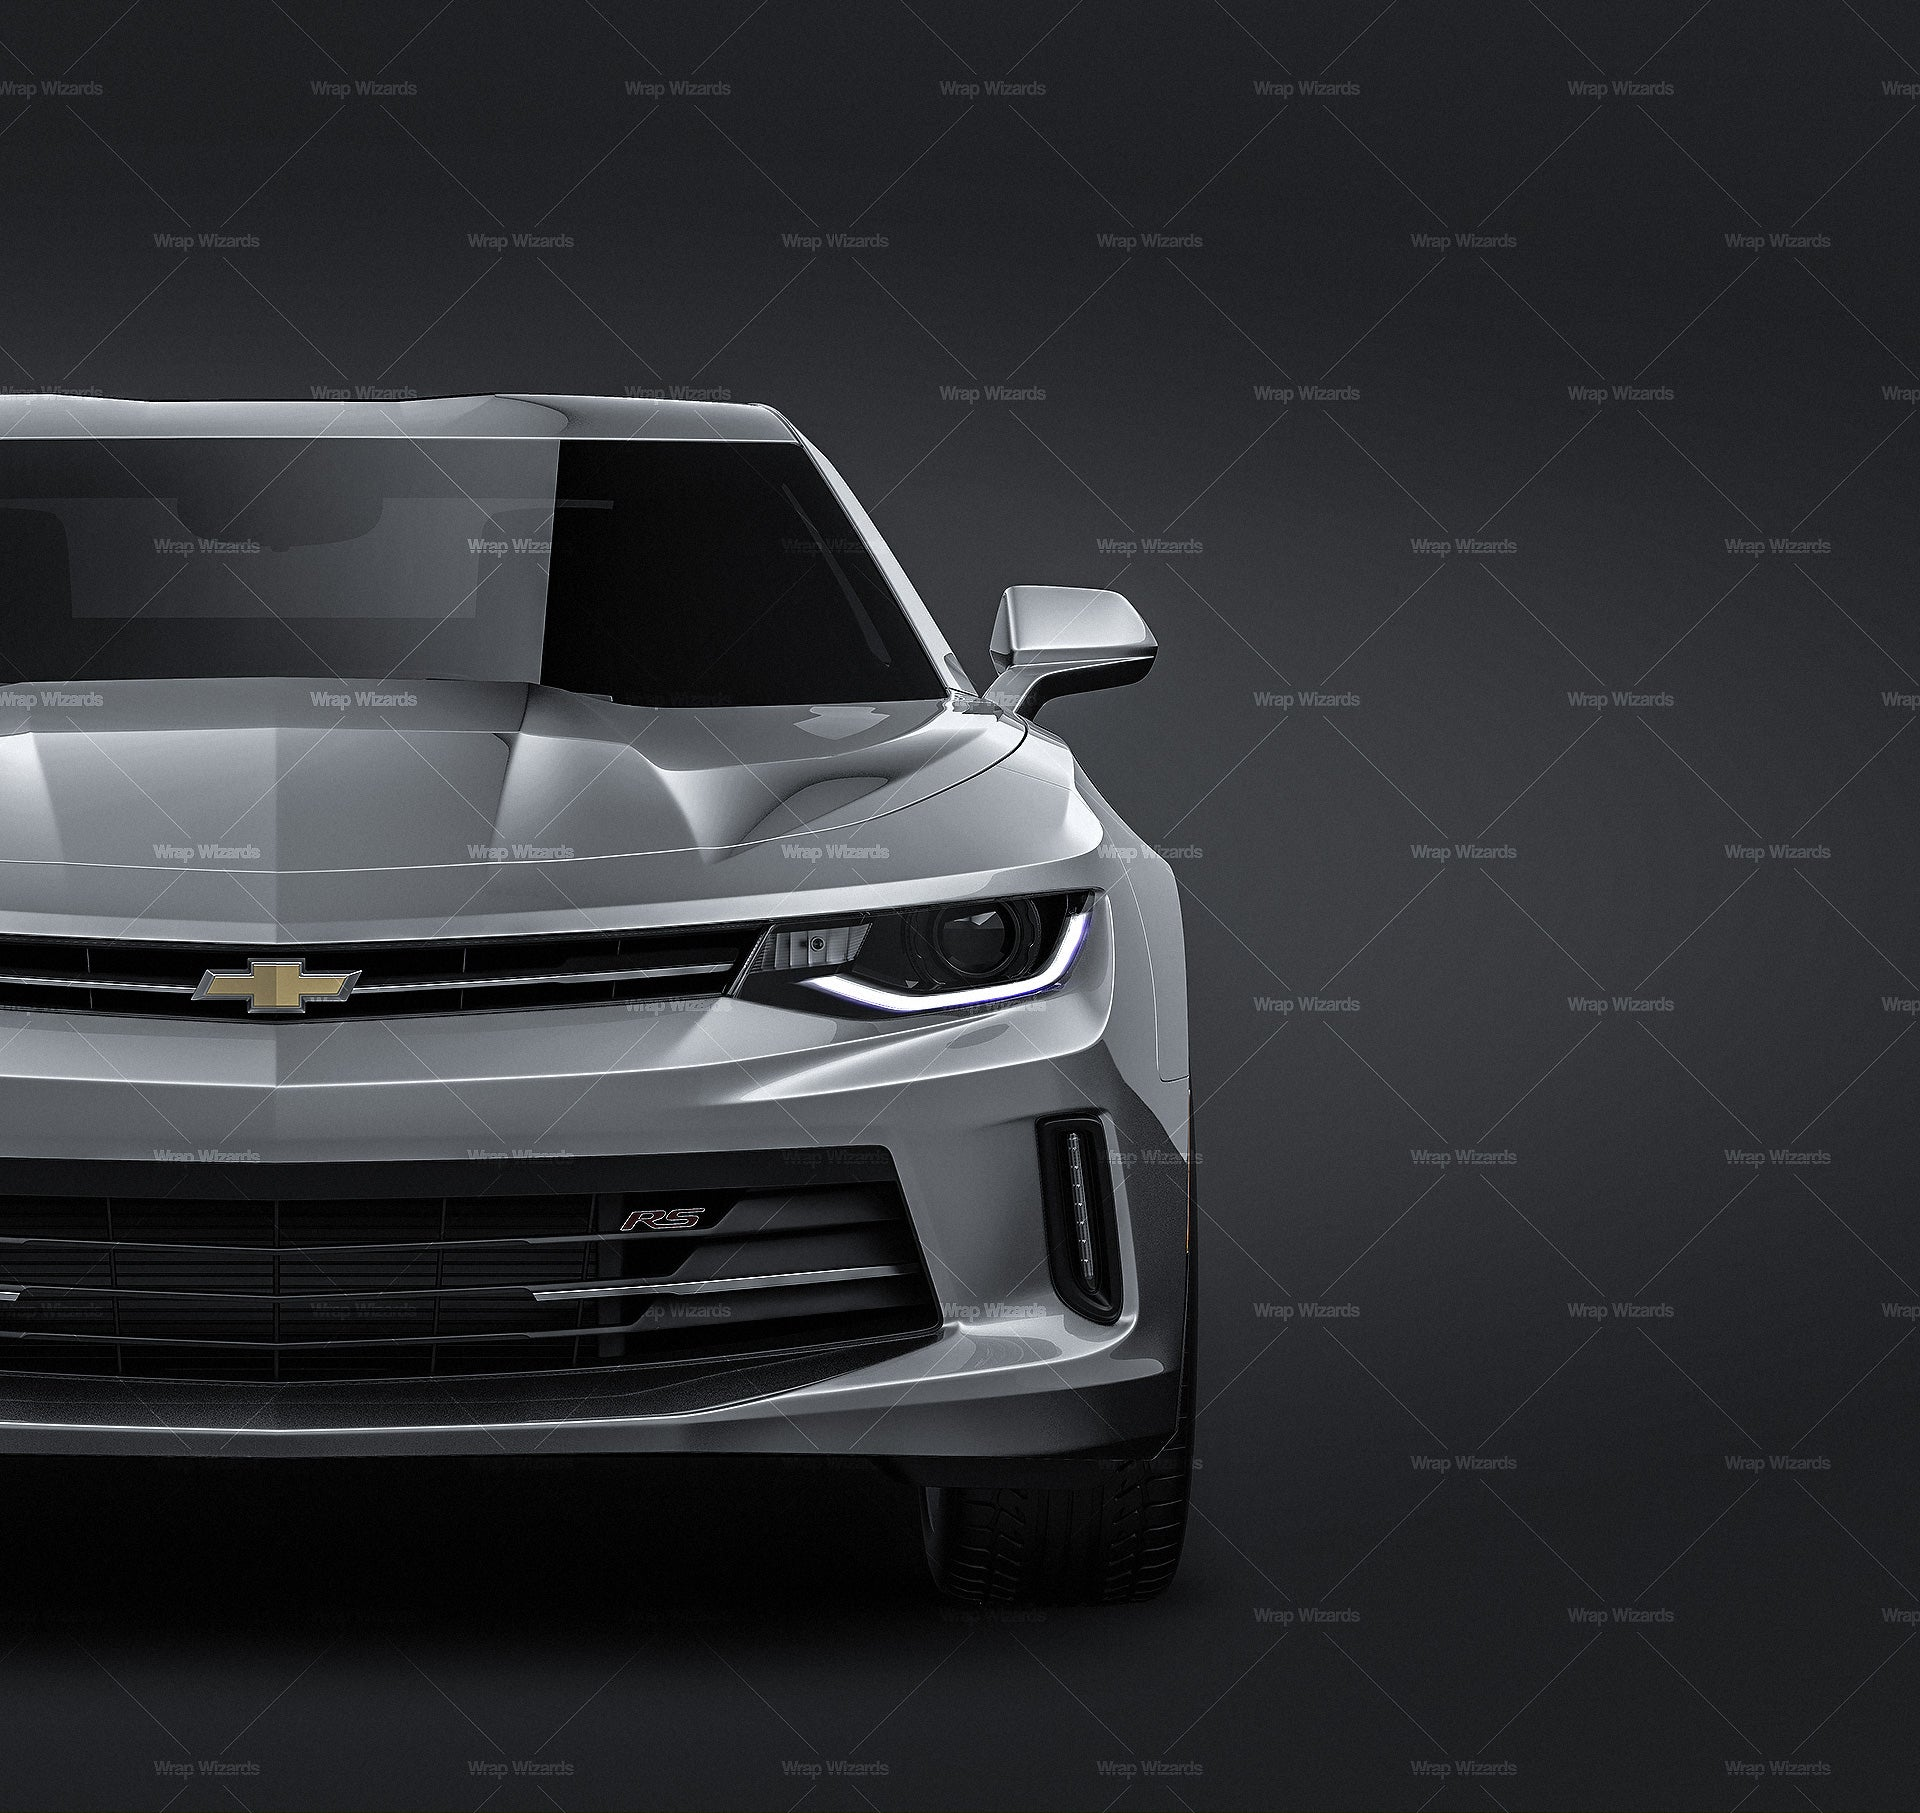 Chevrolet Camaro 2016 all sides Car Mockup Template.psd